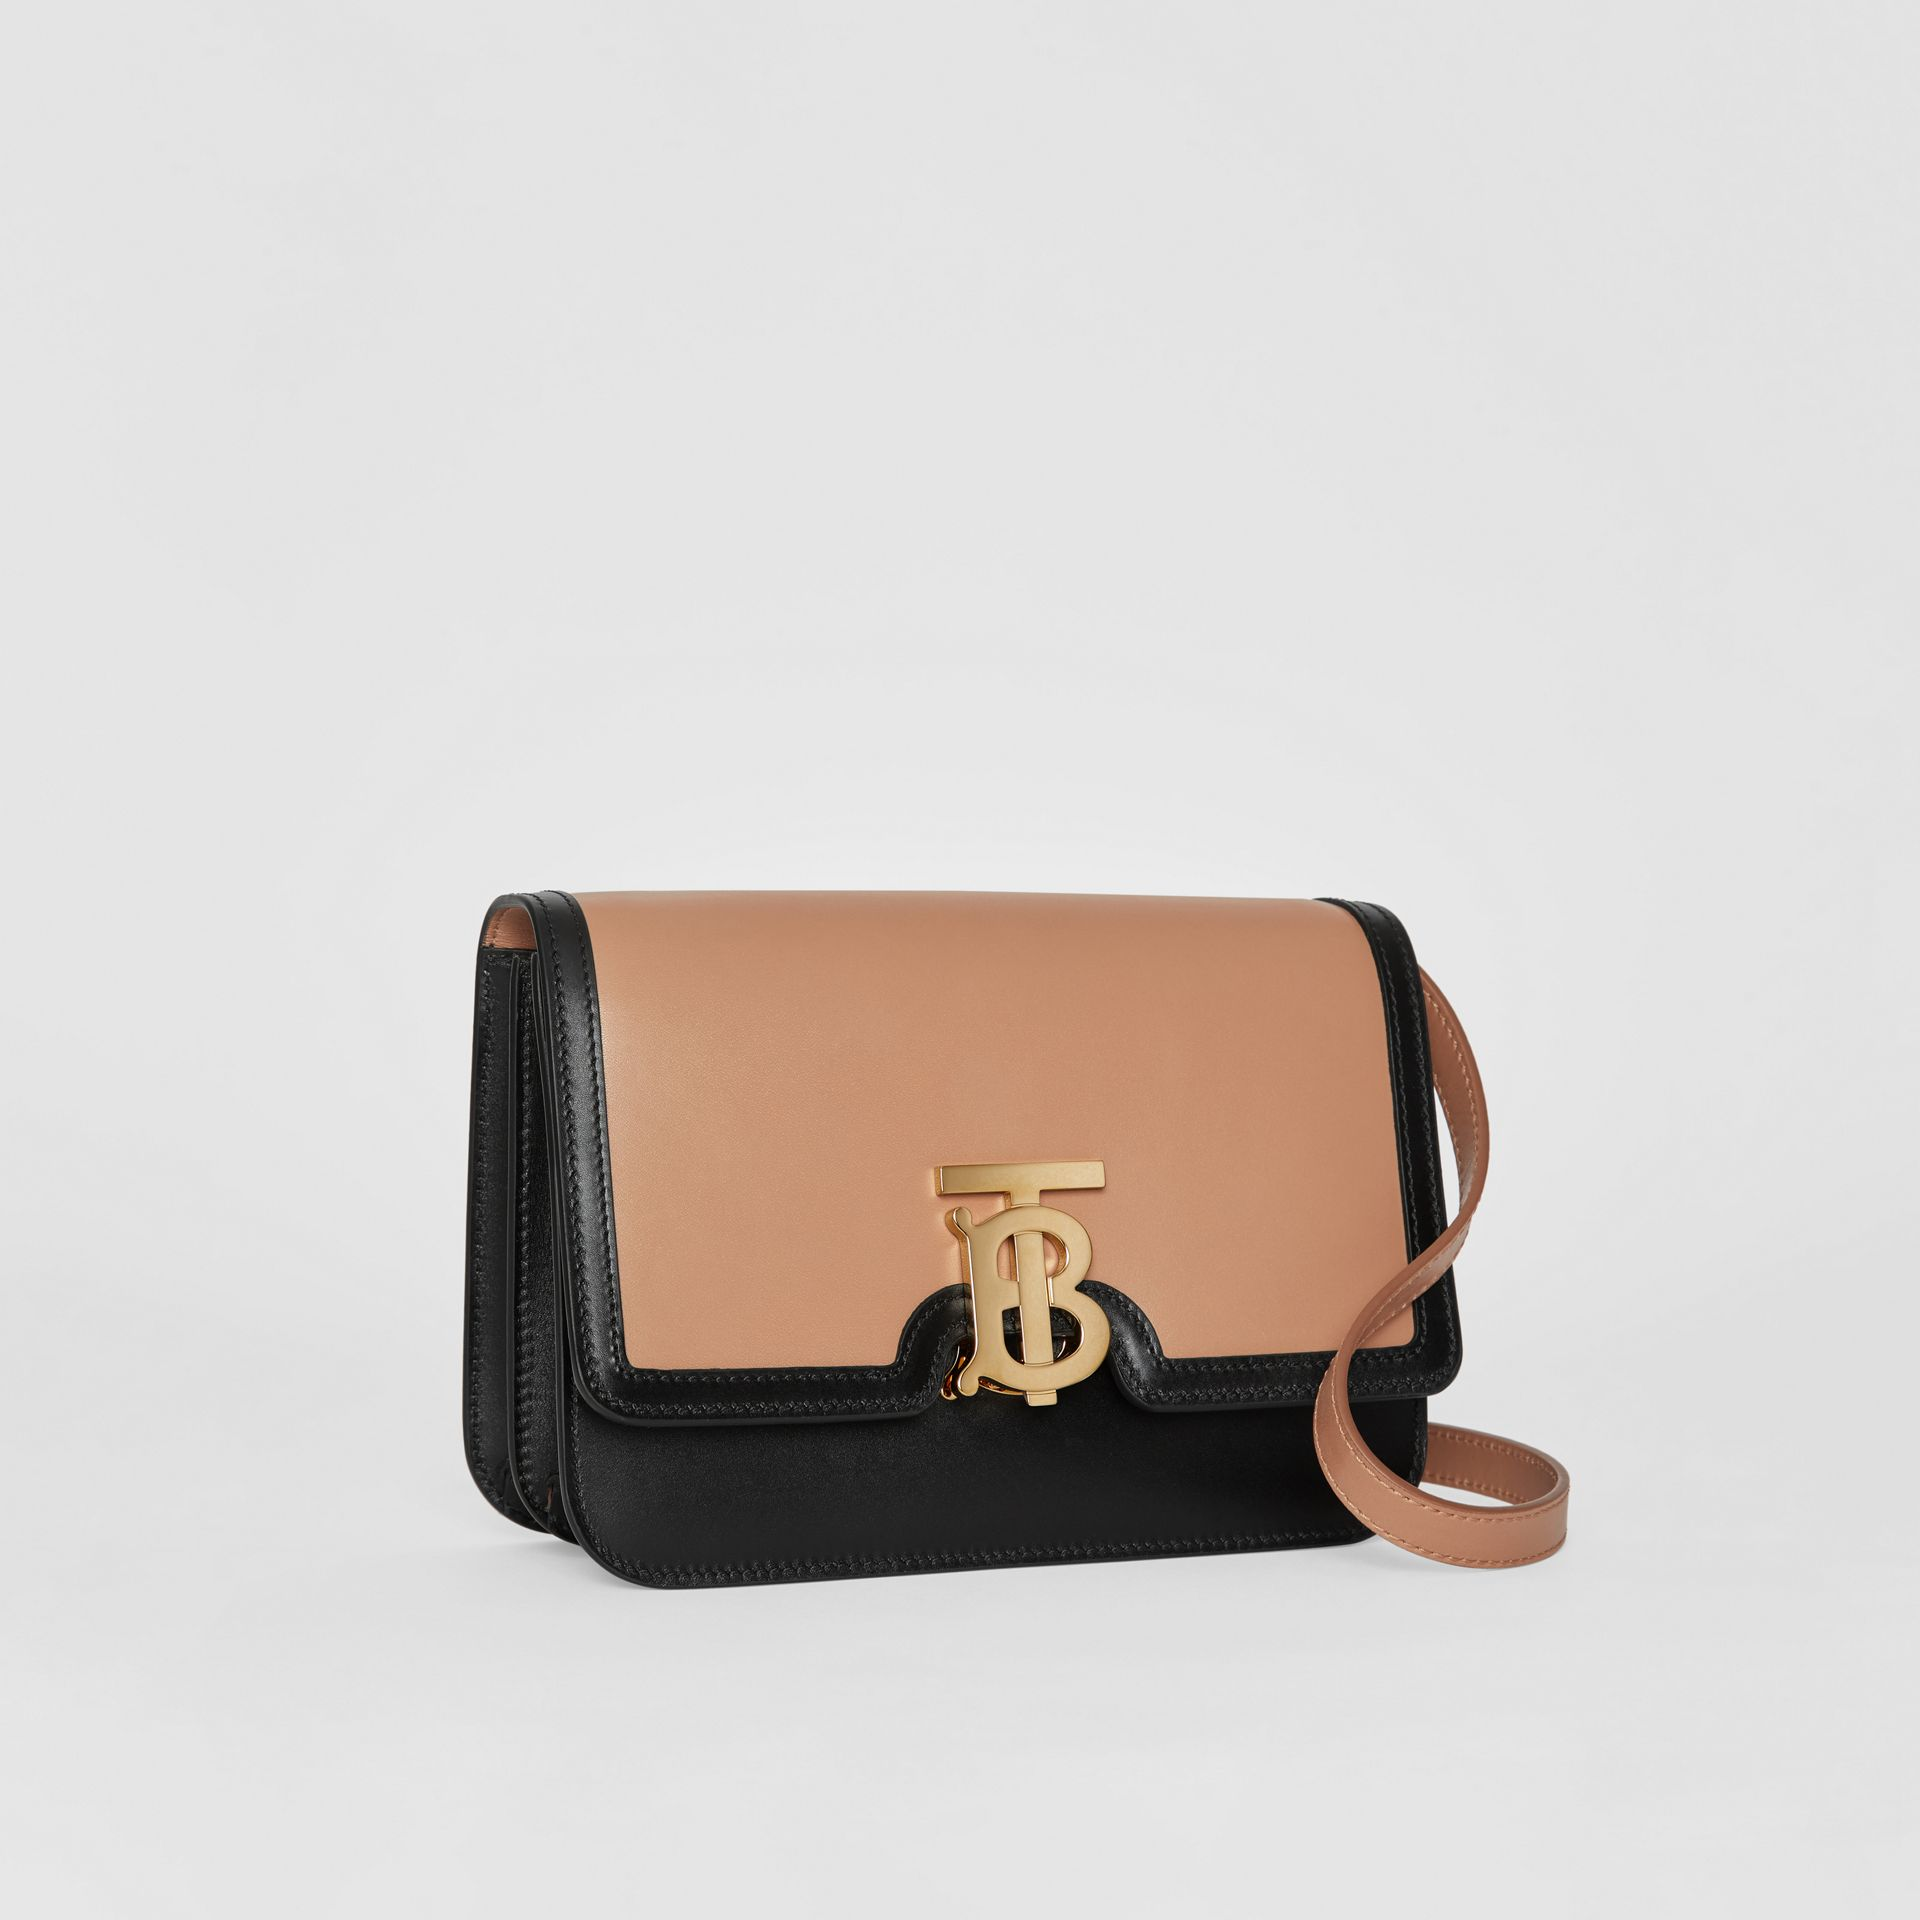 Small Leather TB Bag in Light Camel/black - Women | Burberry Australia - gallery image 6